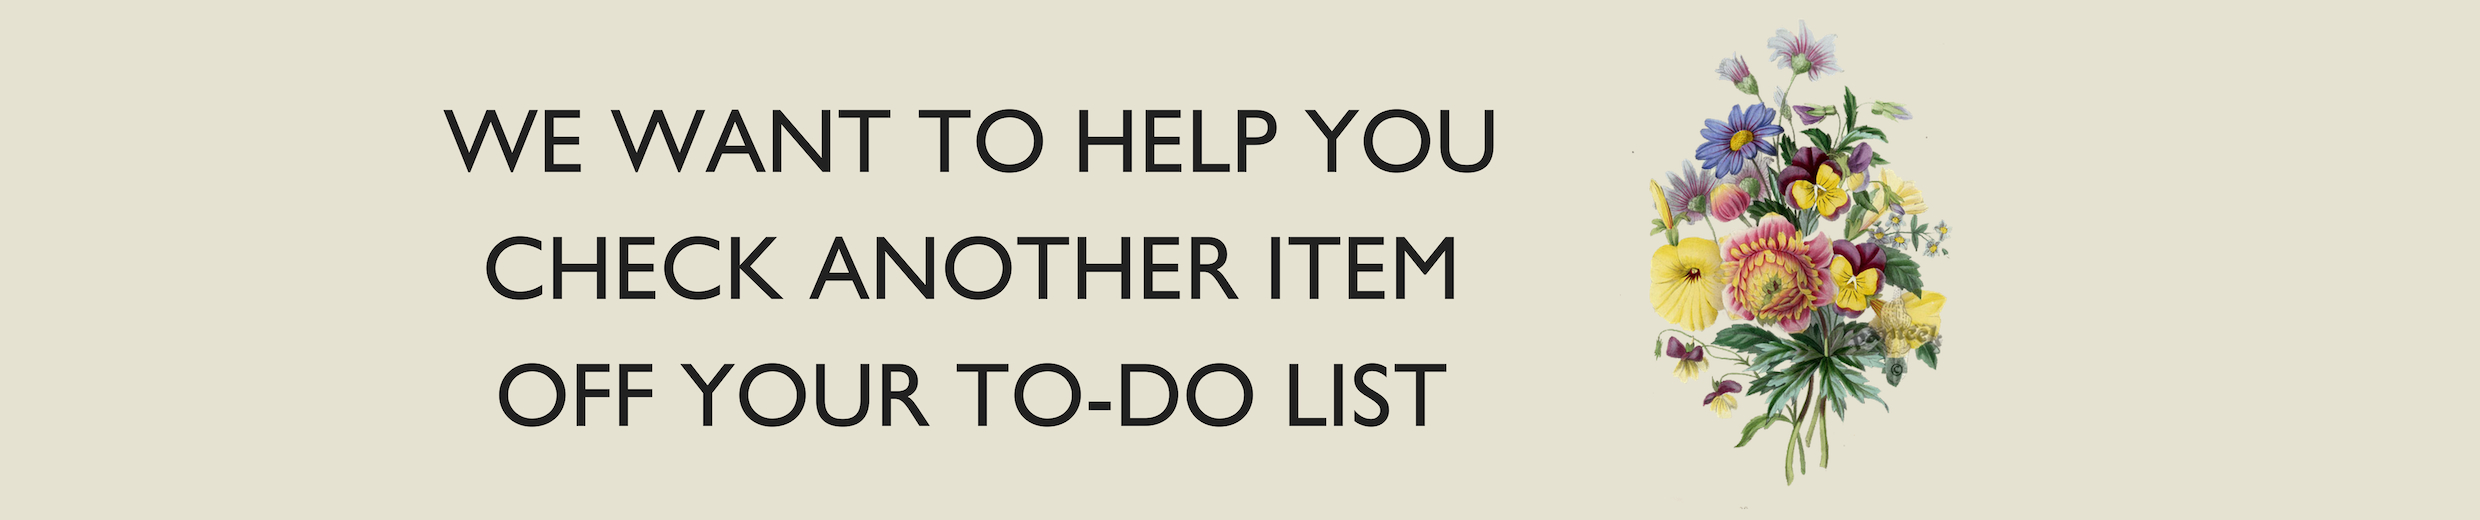 WE WANT TO HELP YOU CHECK THIS ITEM OFF YOUR TO-DO LIST..jpg